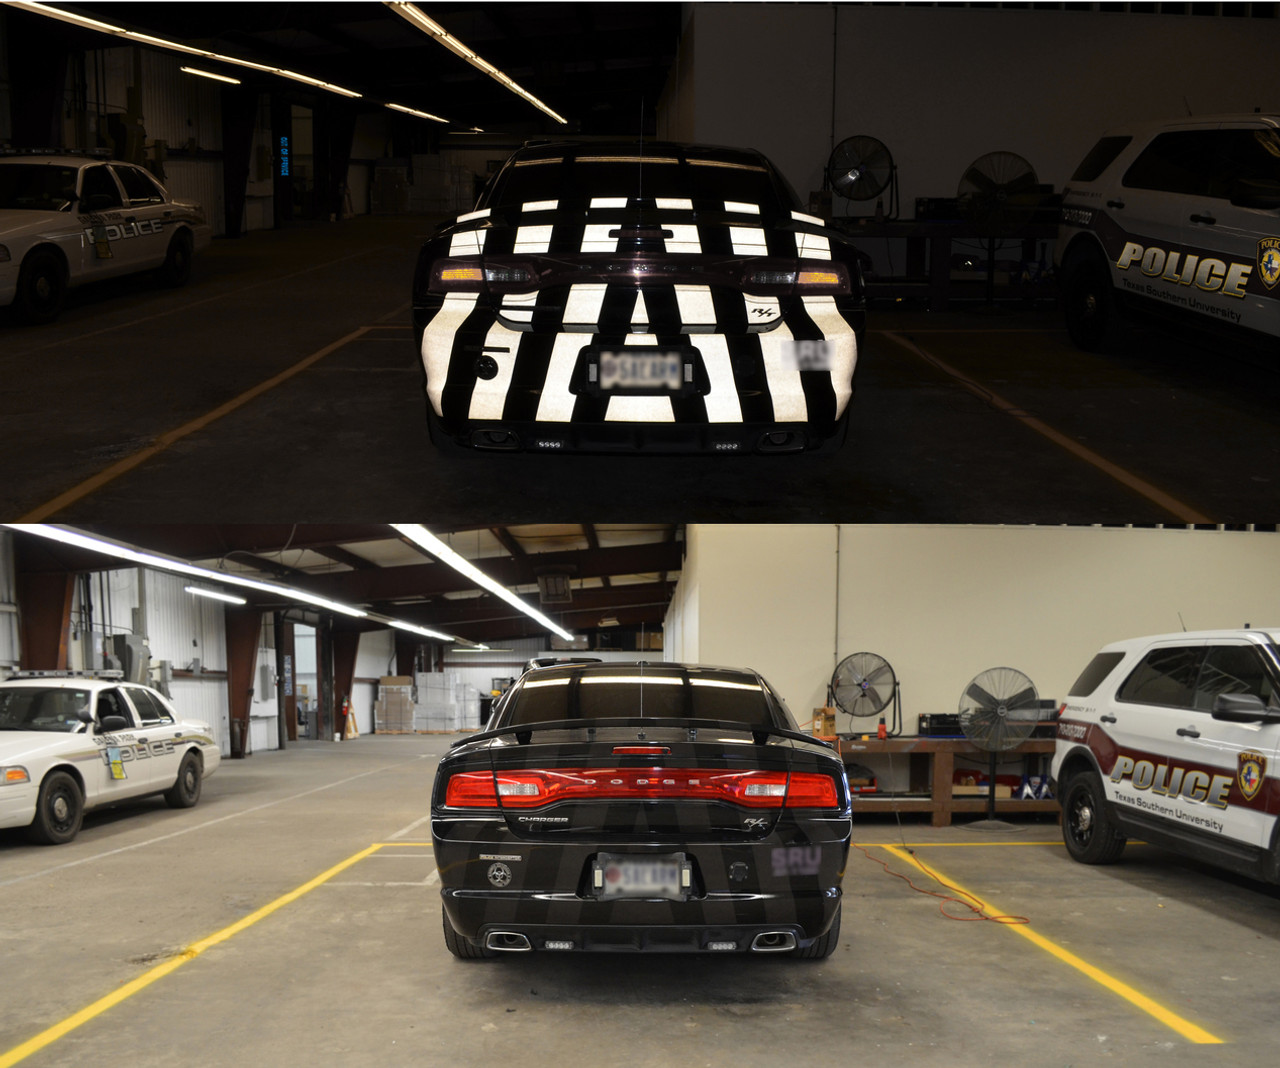 Police and Emergency Vehicle Ghost Chevrons Graphics with 3M Reflective Decal Stripes, fit Cars, SUV's, Trucks, Vans